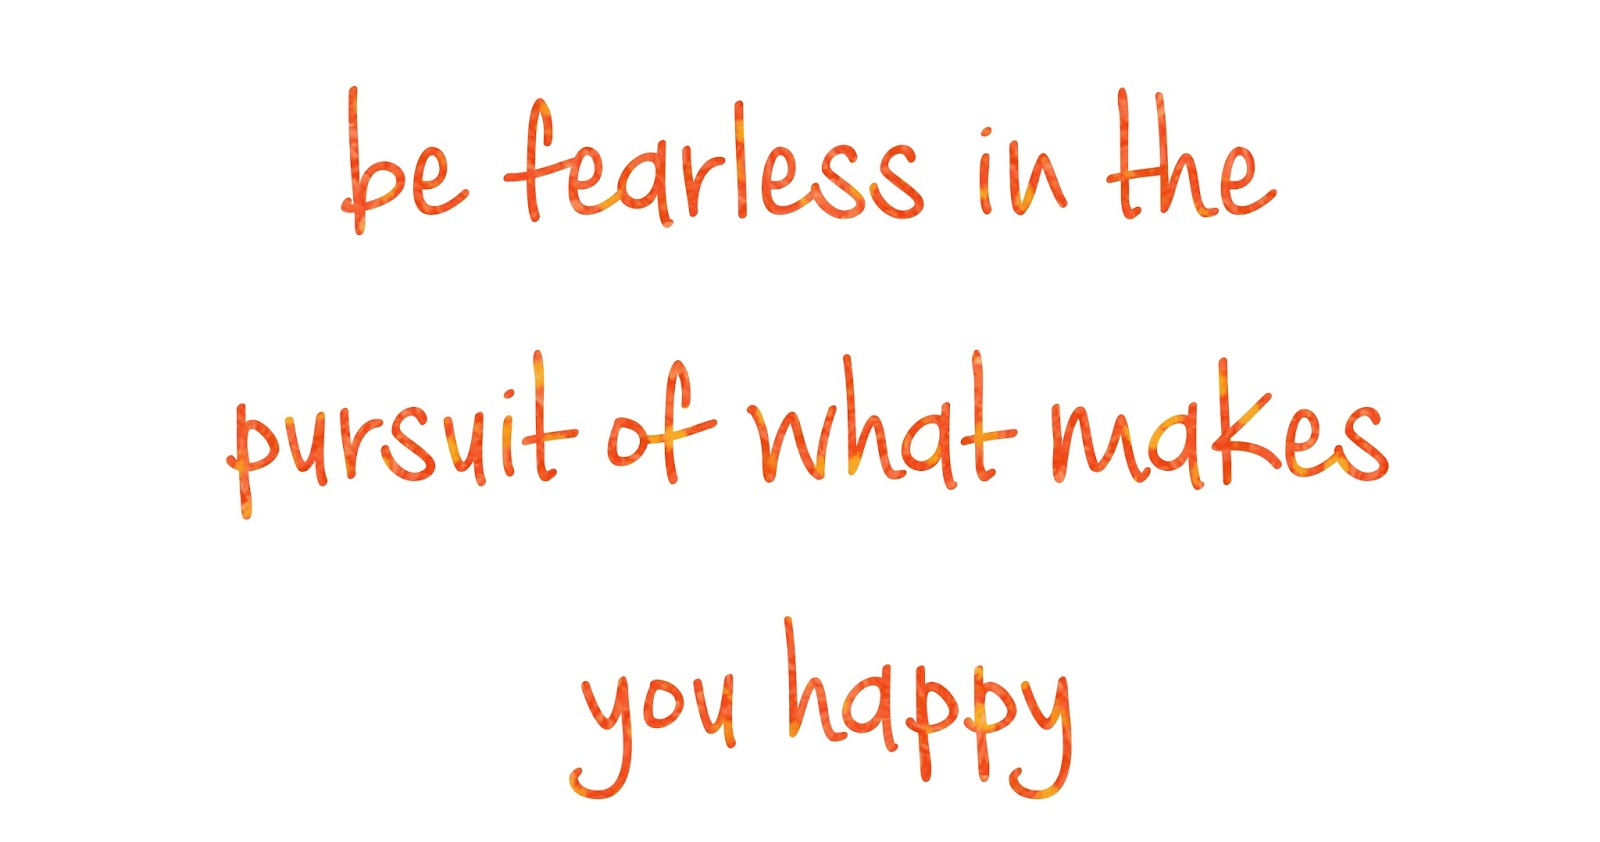 Be fearless in the pursuit of what makes you happy